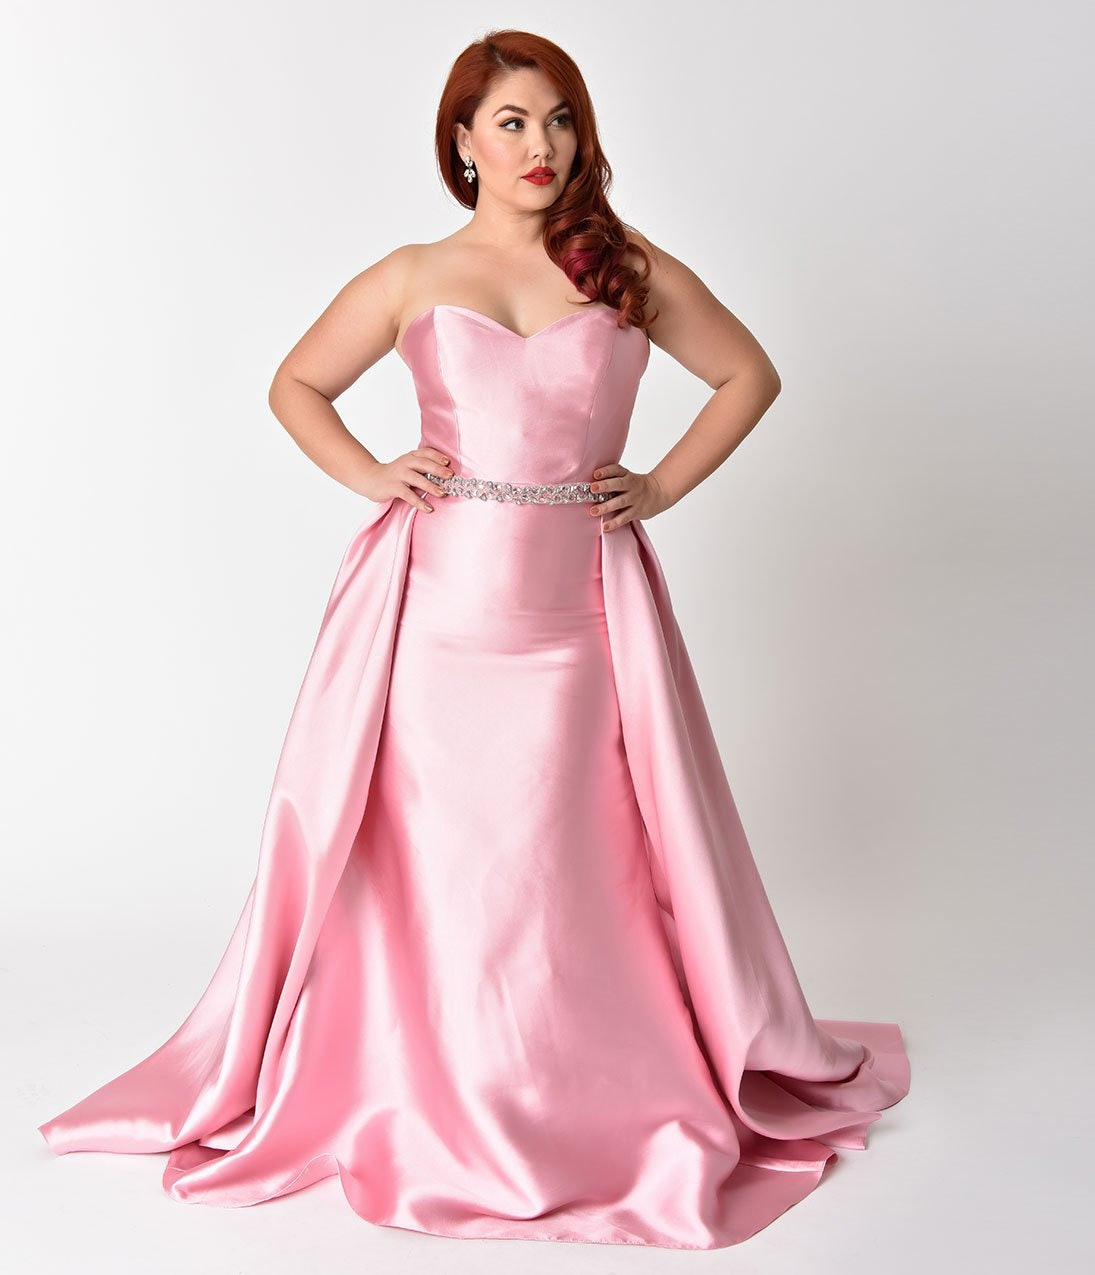 Unique Vintage\'s Disney Princess Prom Dresses Prove You Don\'t Need A ...